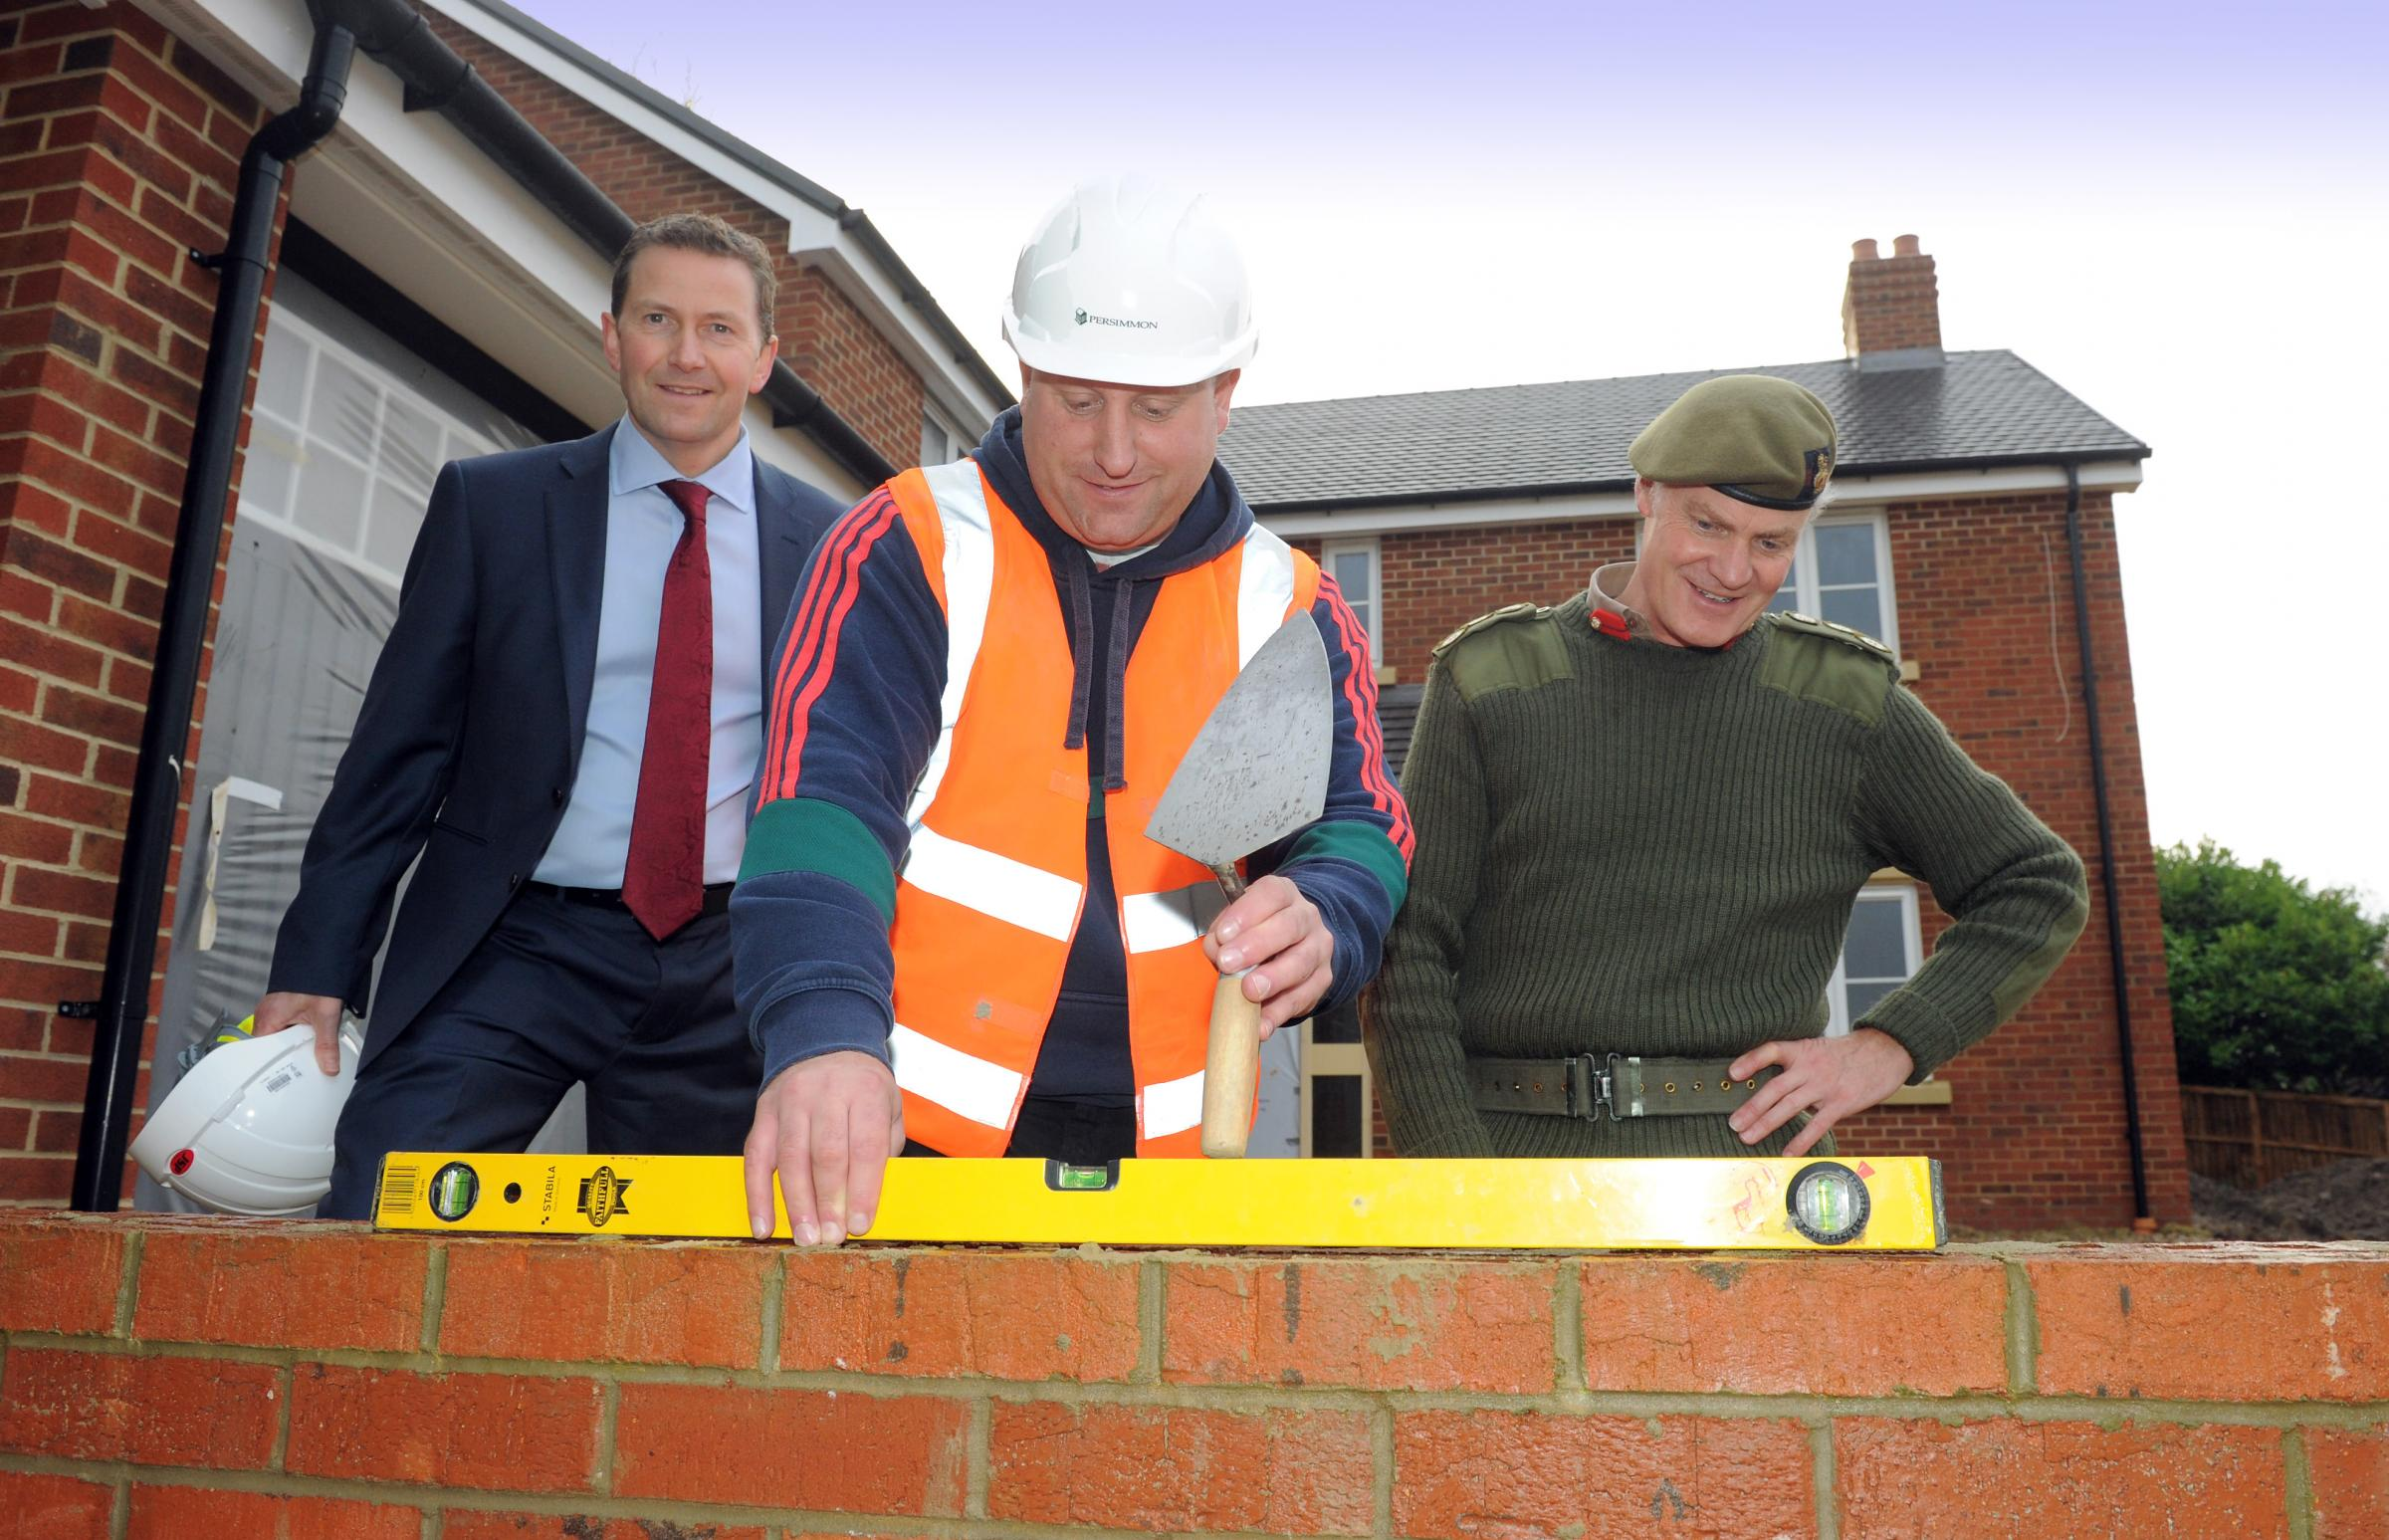 Jeff Fairburn, group CEO, Persimmon plc with ex-forces serviceman Ross Wilson who is training to be a bricklayer with Brigadier Greville Bibby looking on. (13512047)